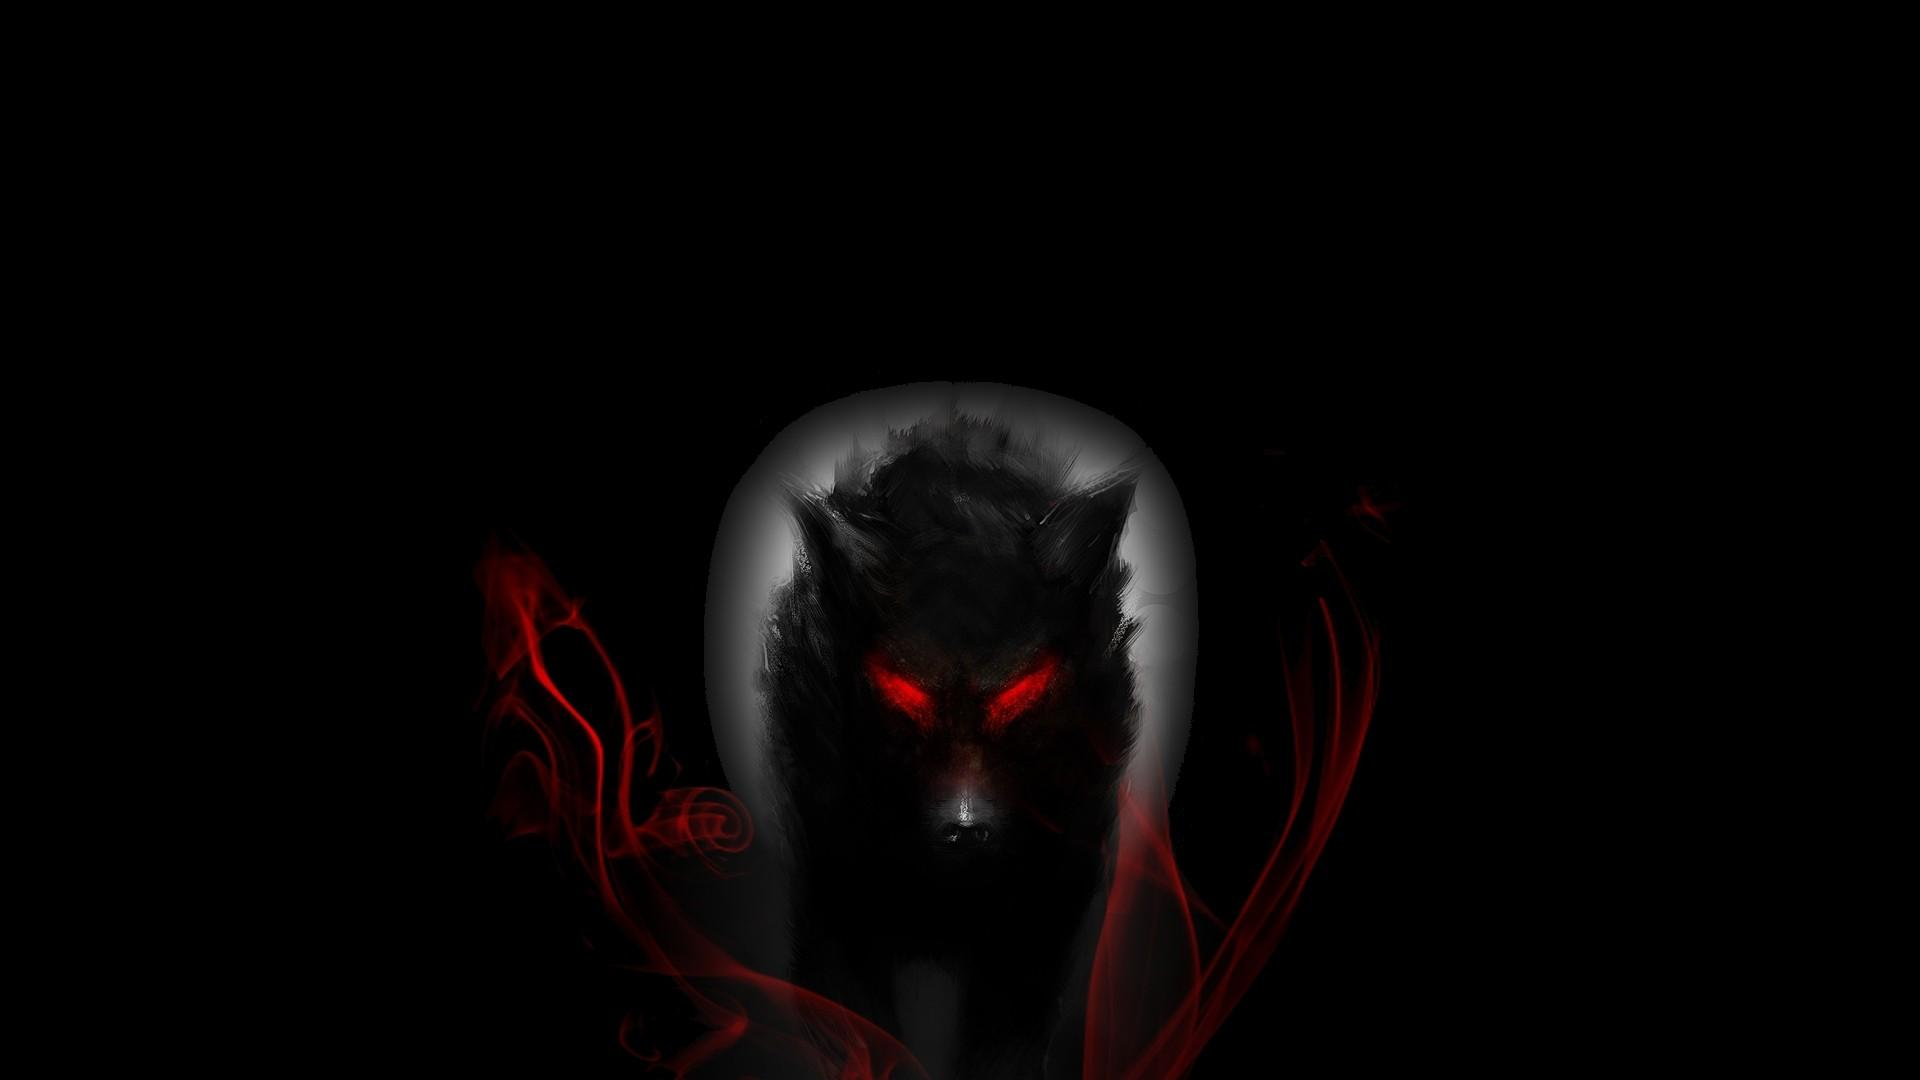 Red-eyed werewolf wallpaper